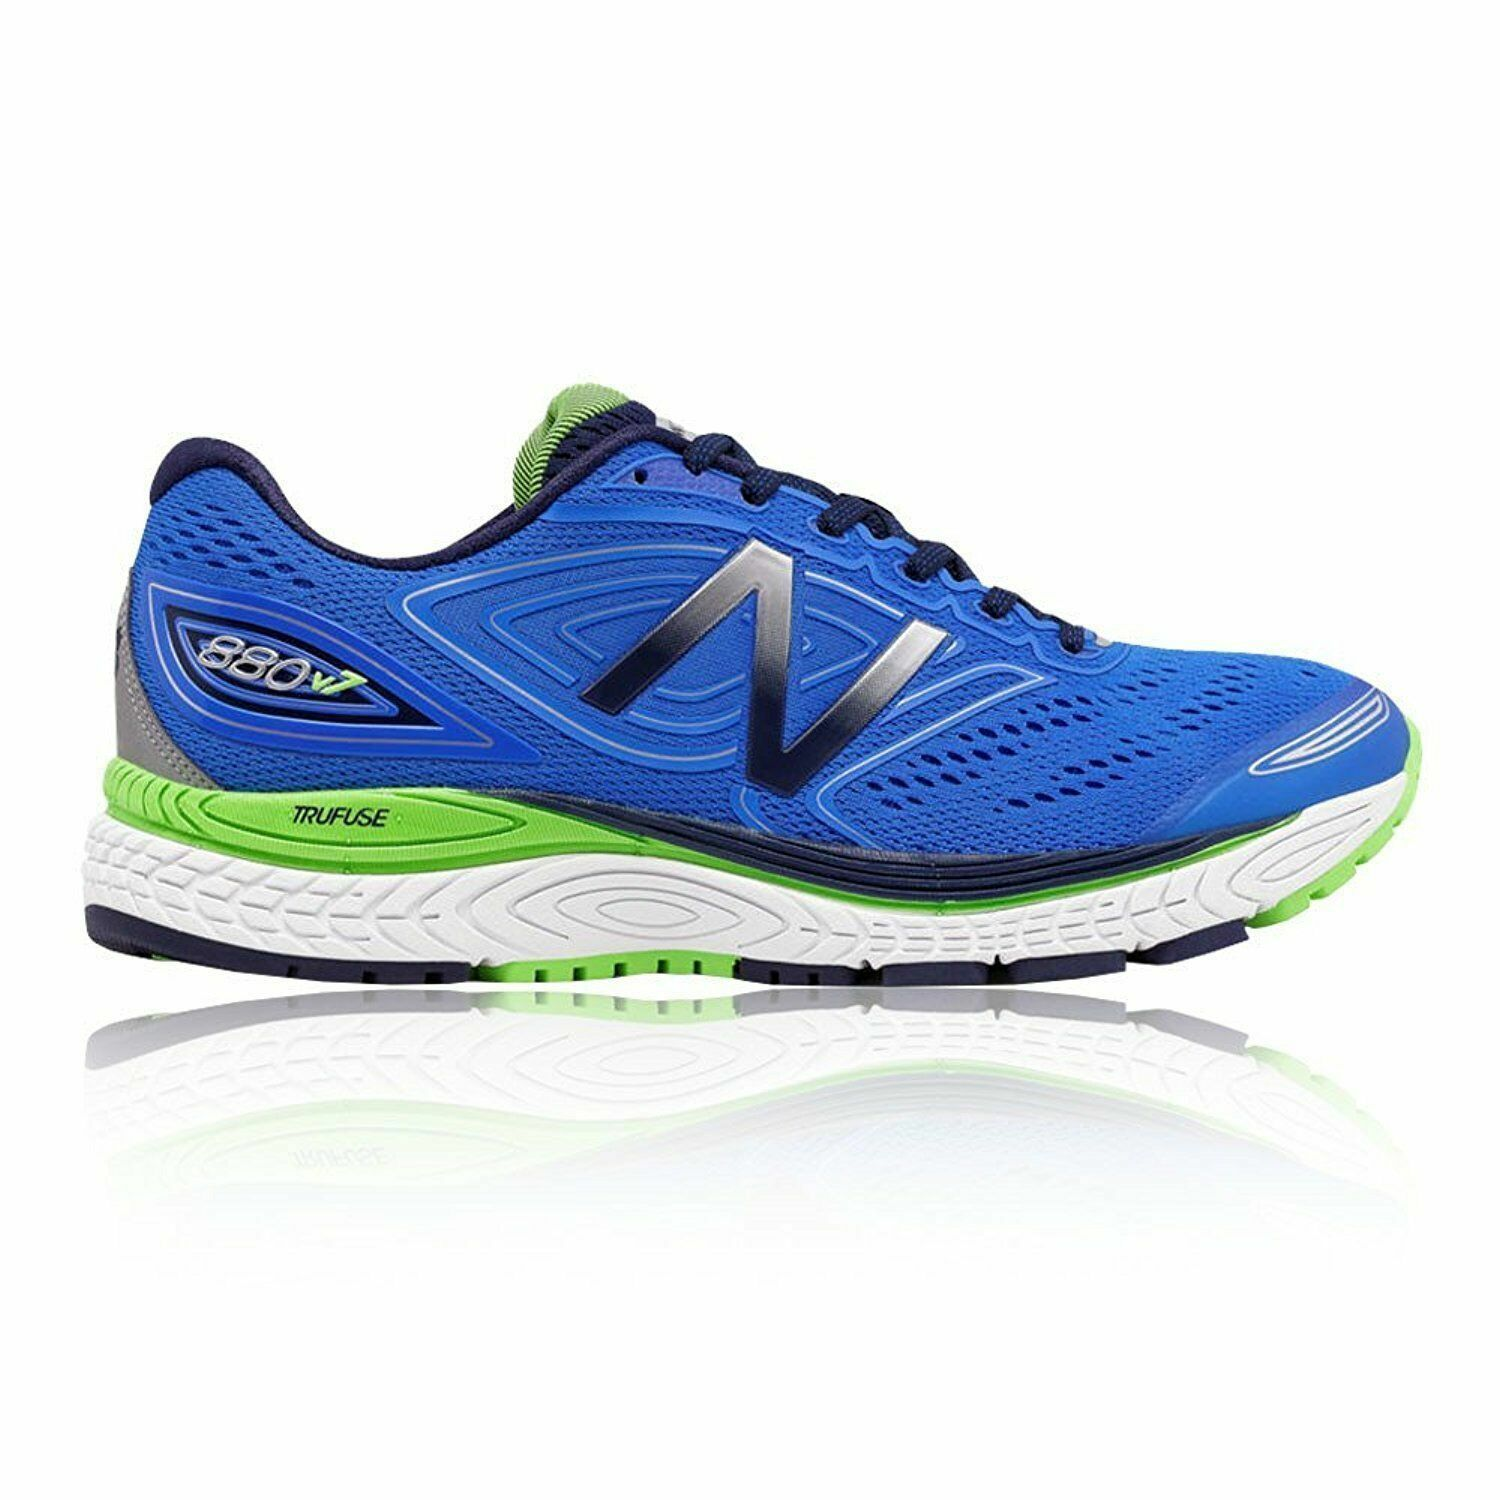 NEW Balance 880v7 Men's Size 9 Bright bluee Running shoes M880bw7